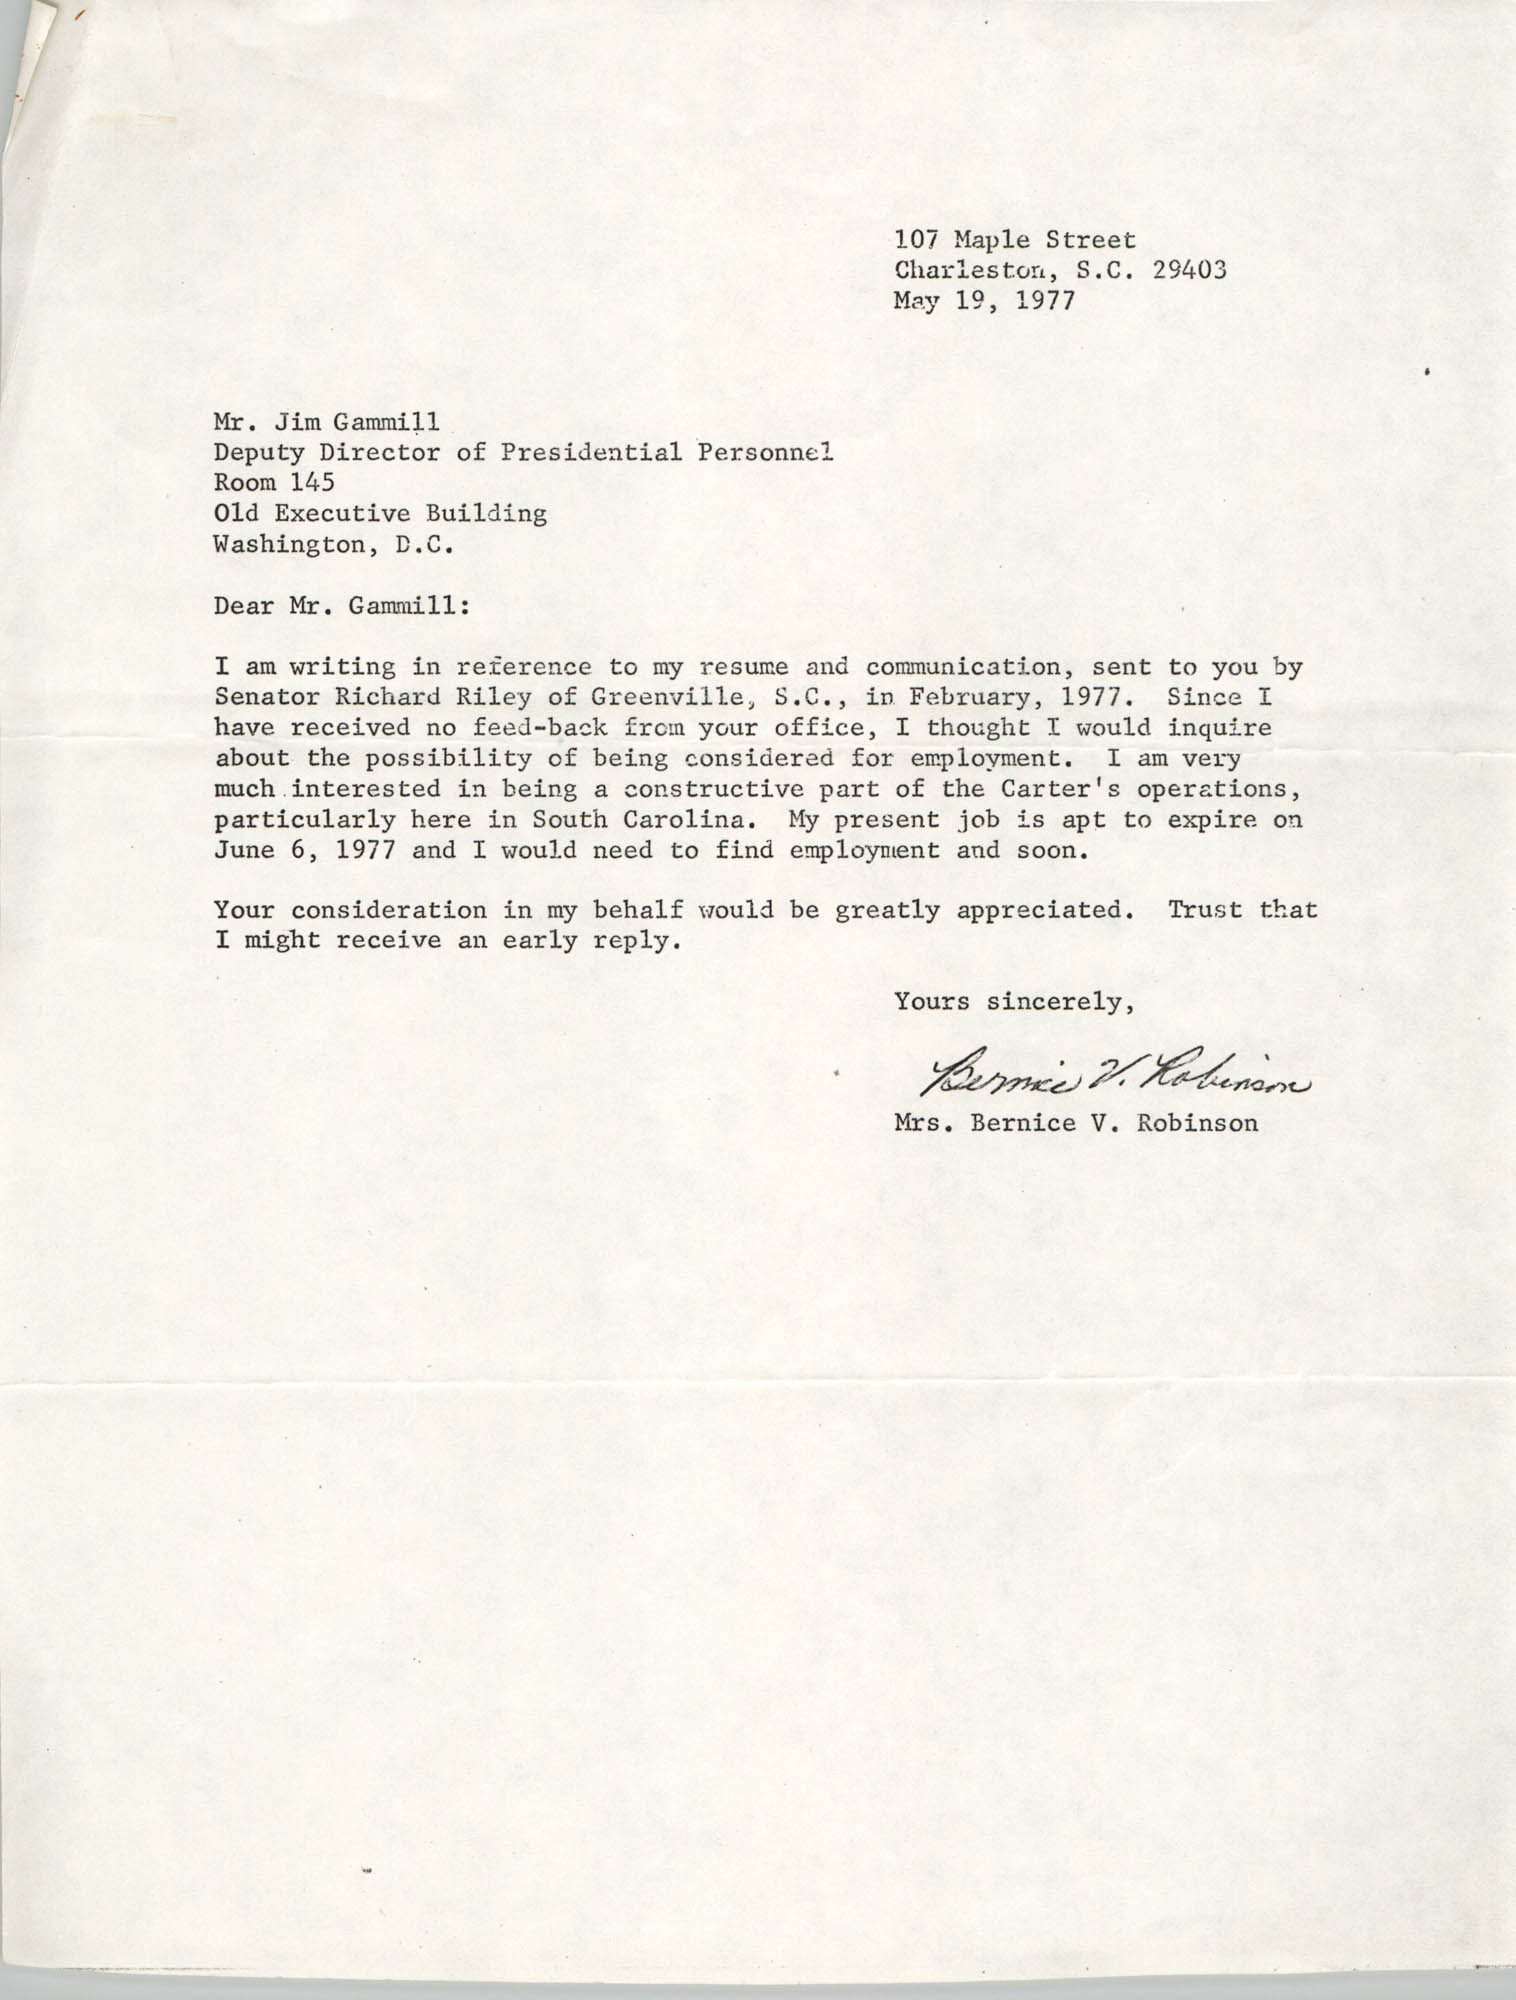 Letter from Bernice V. Robinson to Jim Gammill, May 19, 1977